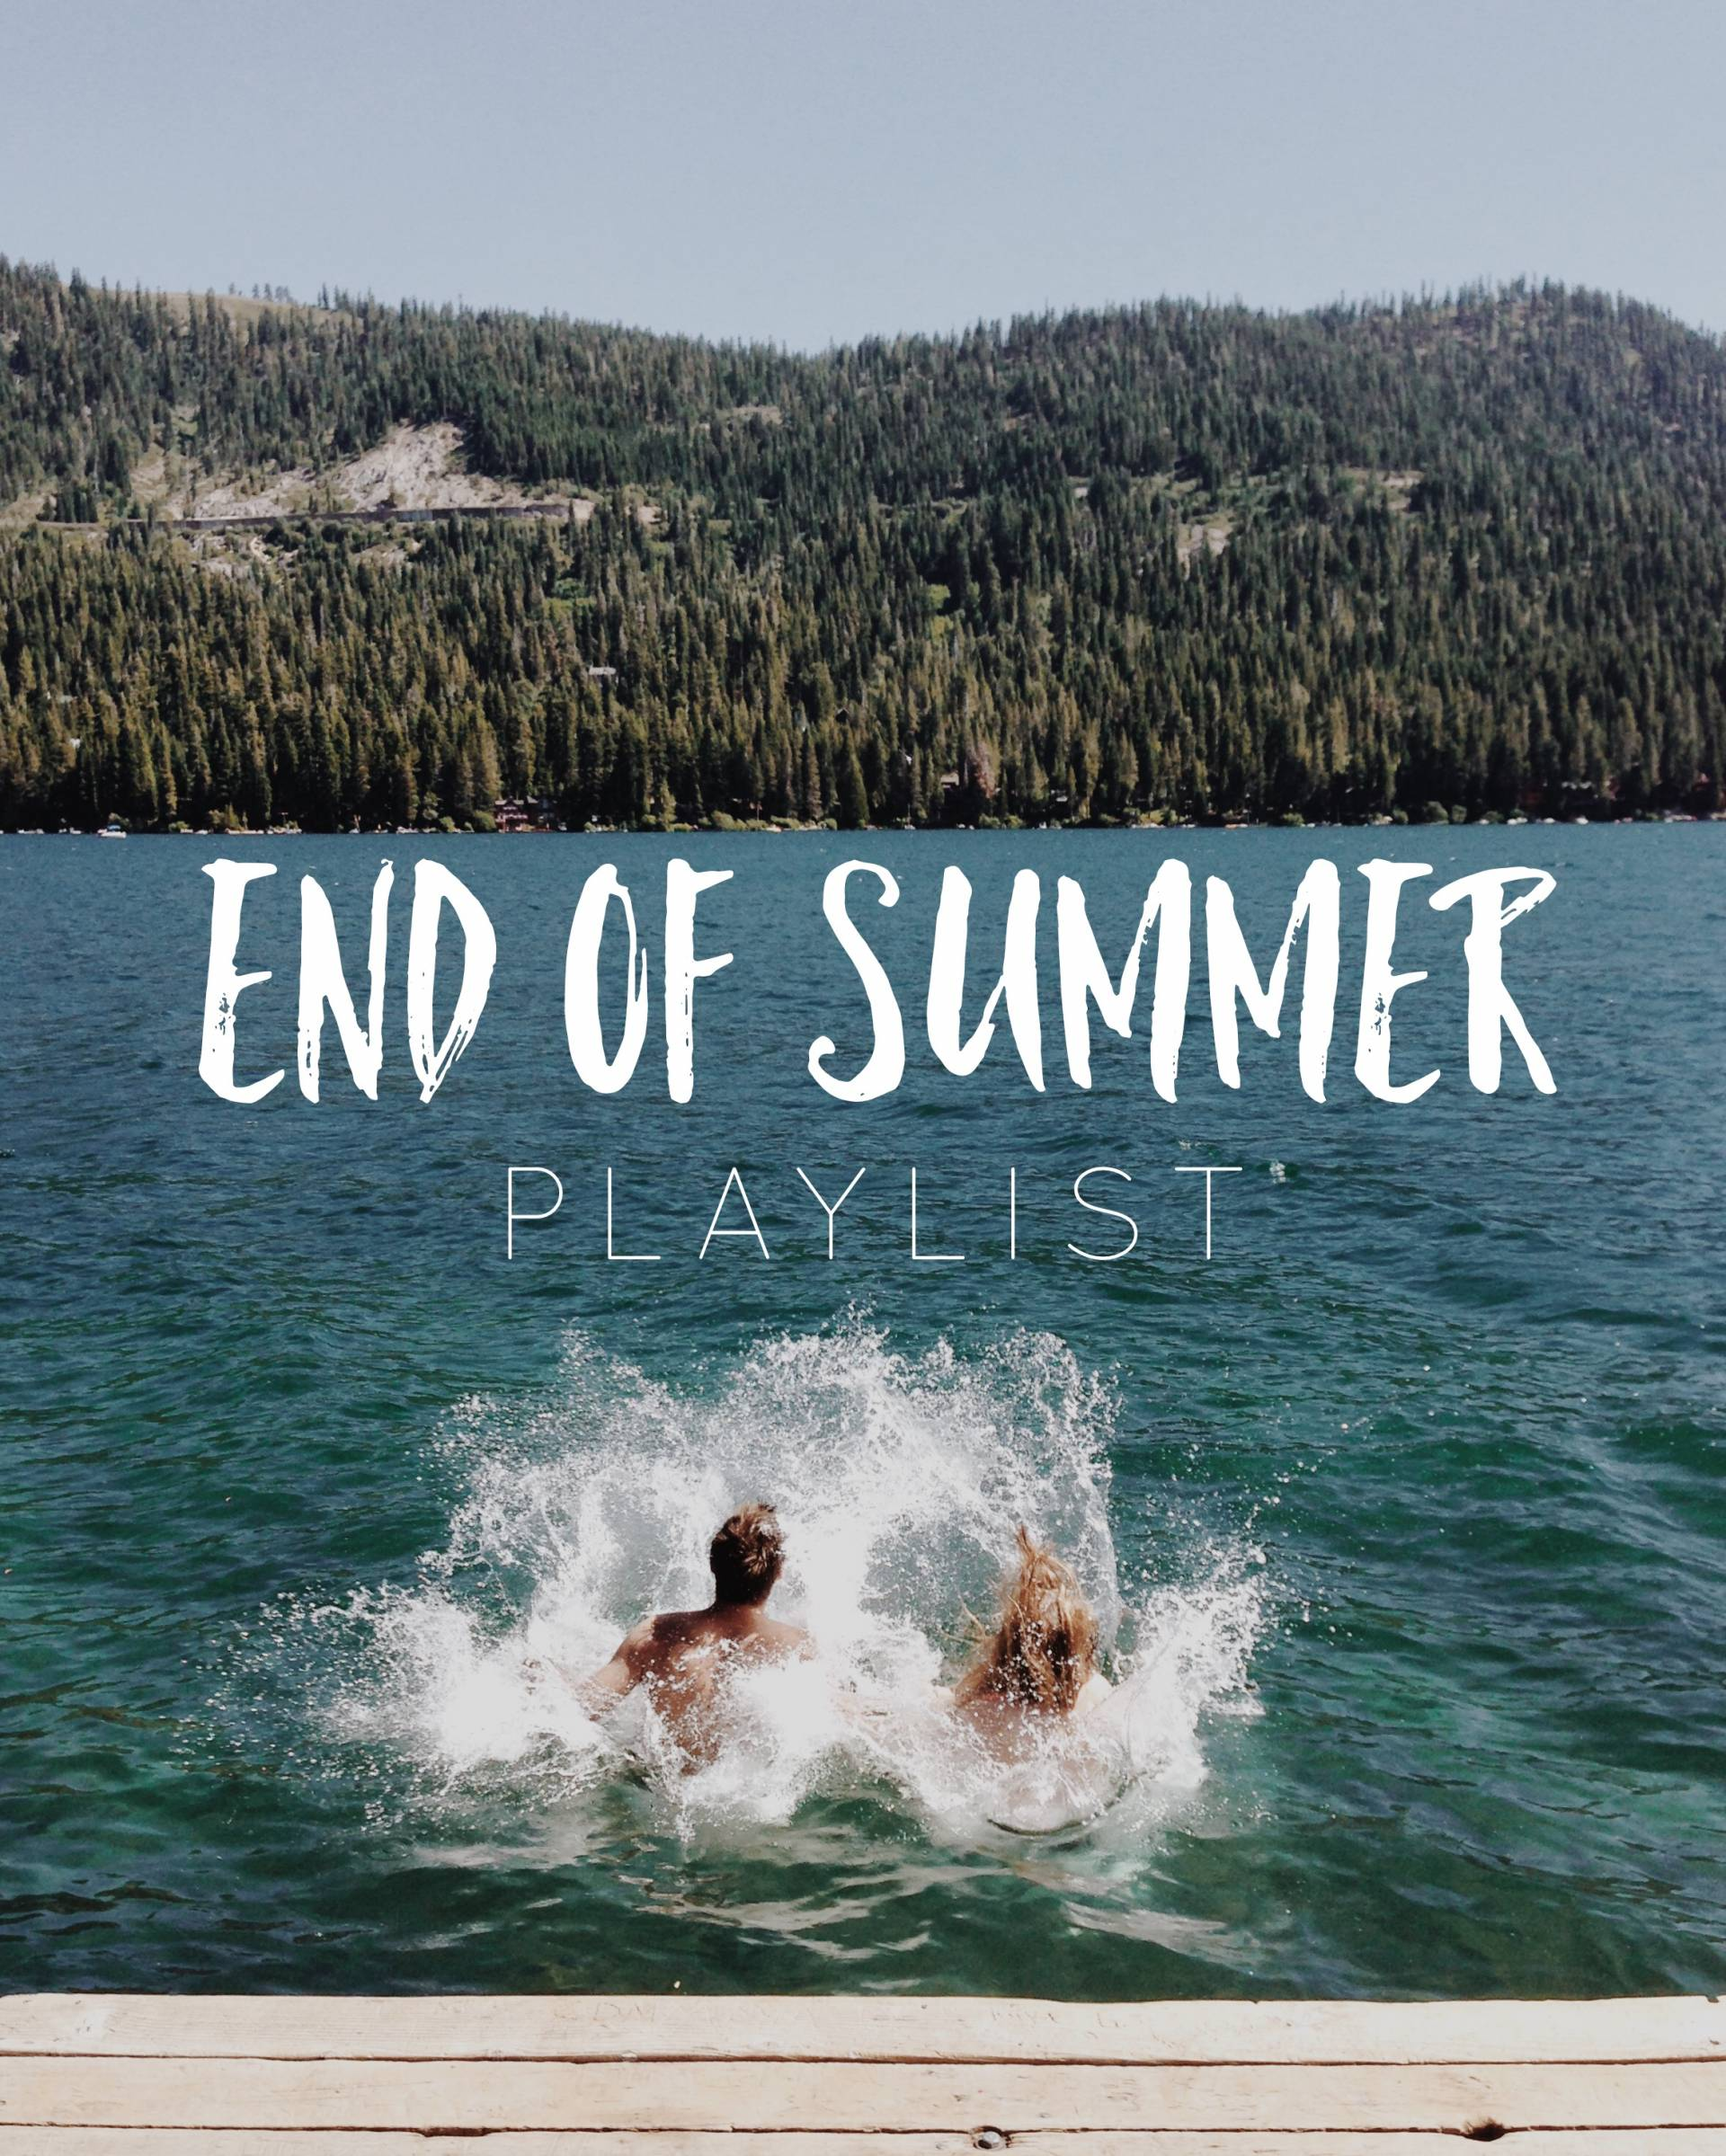 End of Summer Playlist